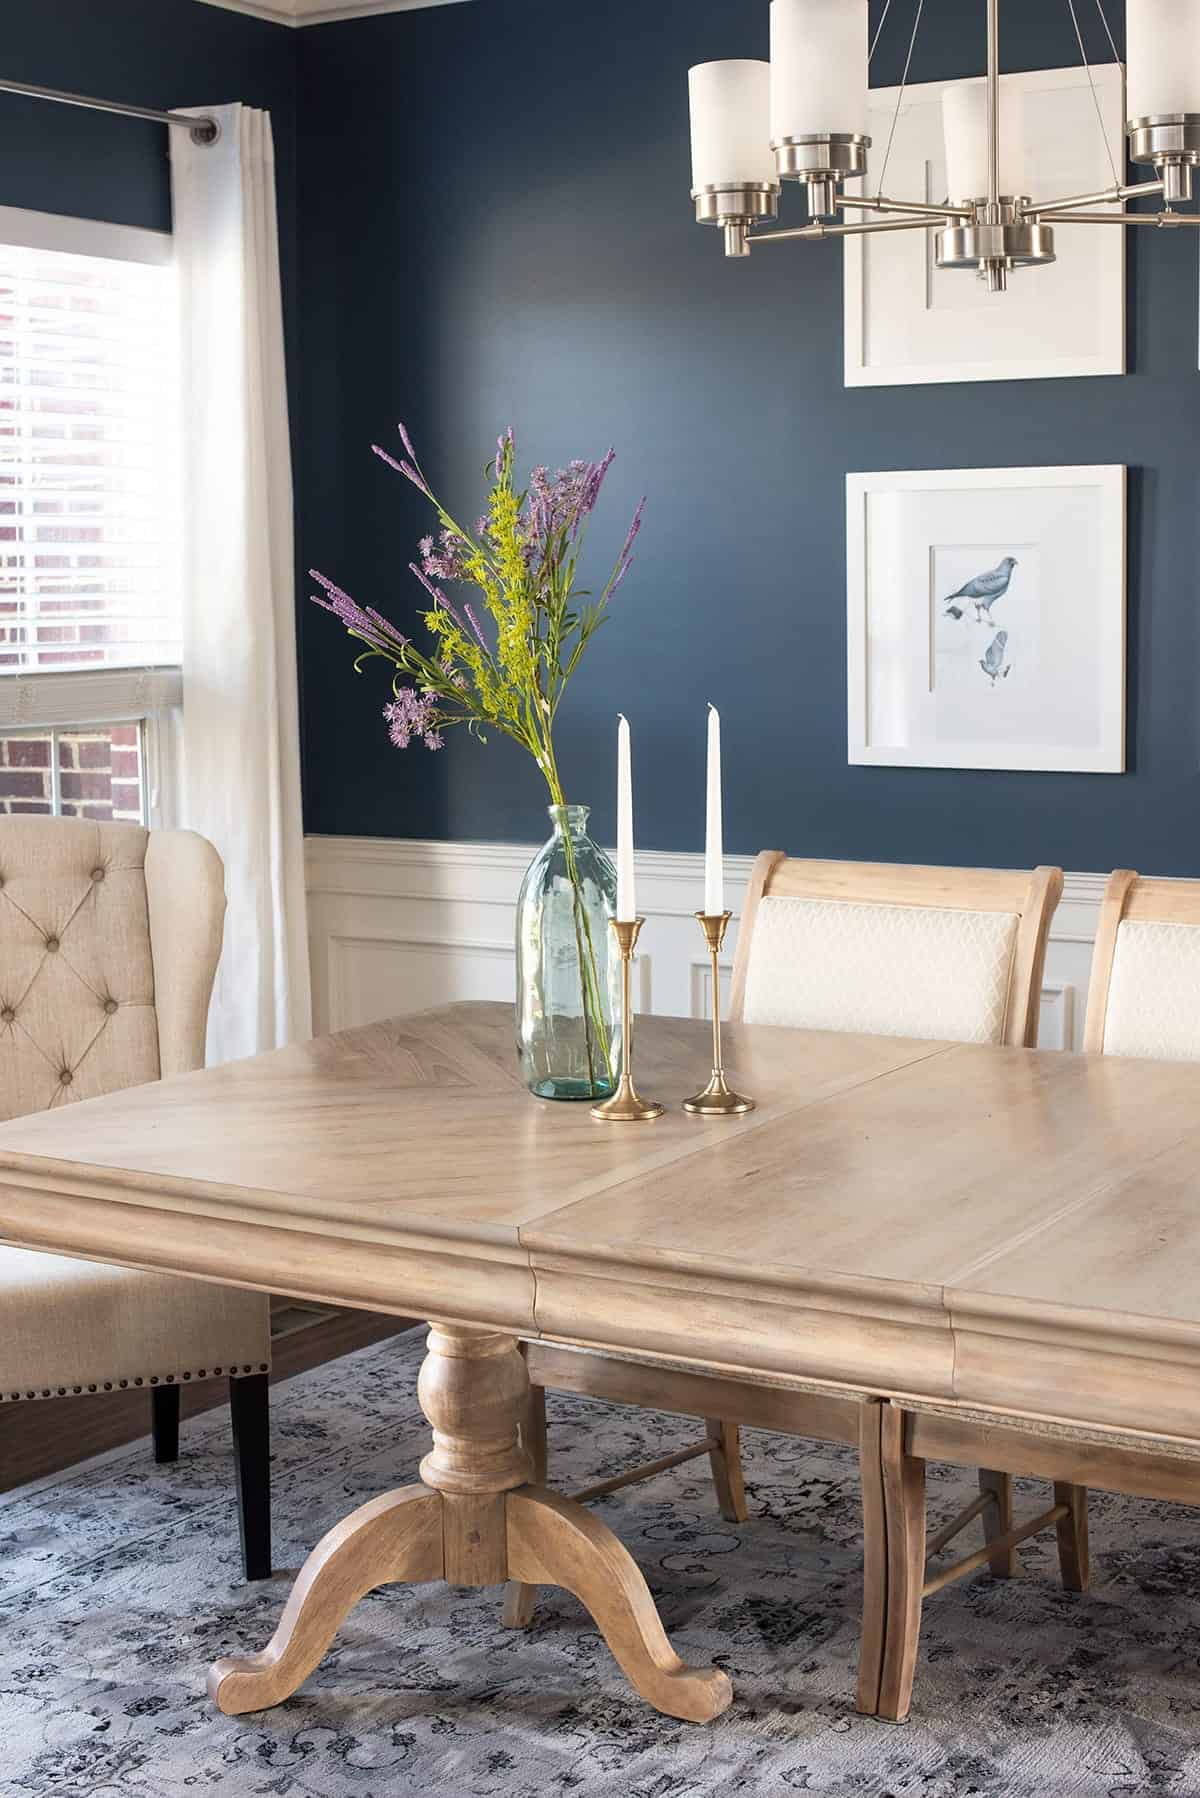 Finished natural raw wood dining room table and dining room chairs. Cerulean blue walls with bird print, bud vase and brass candlesticks adorn table.